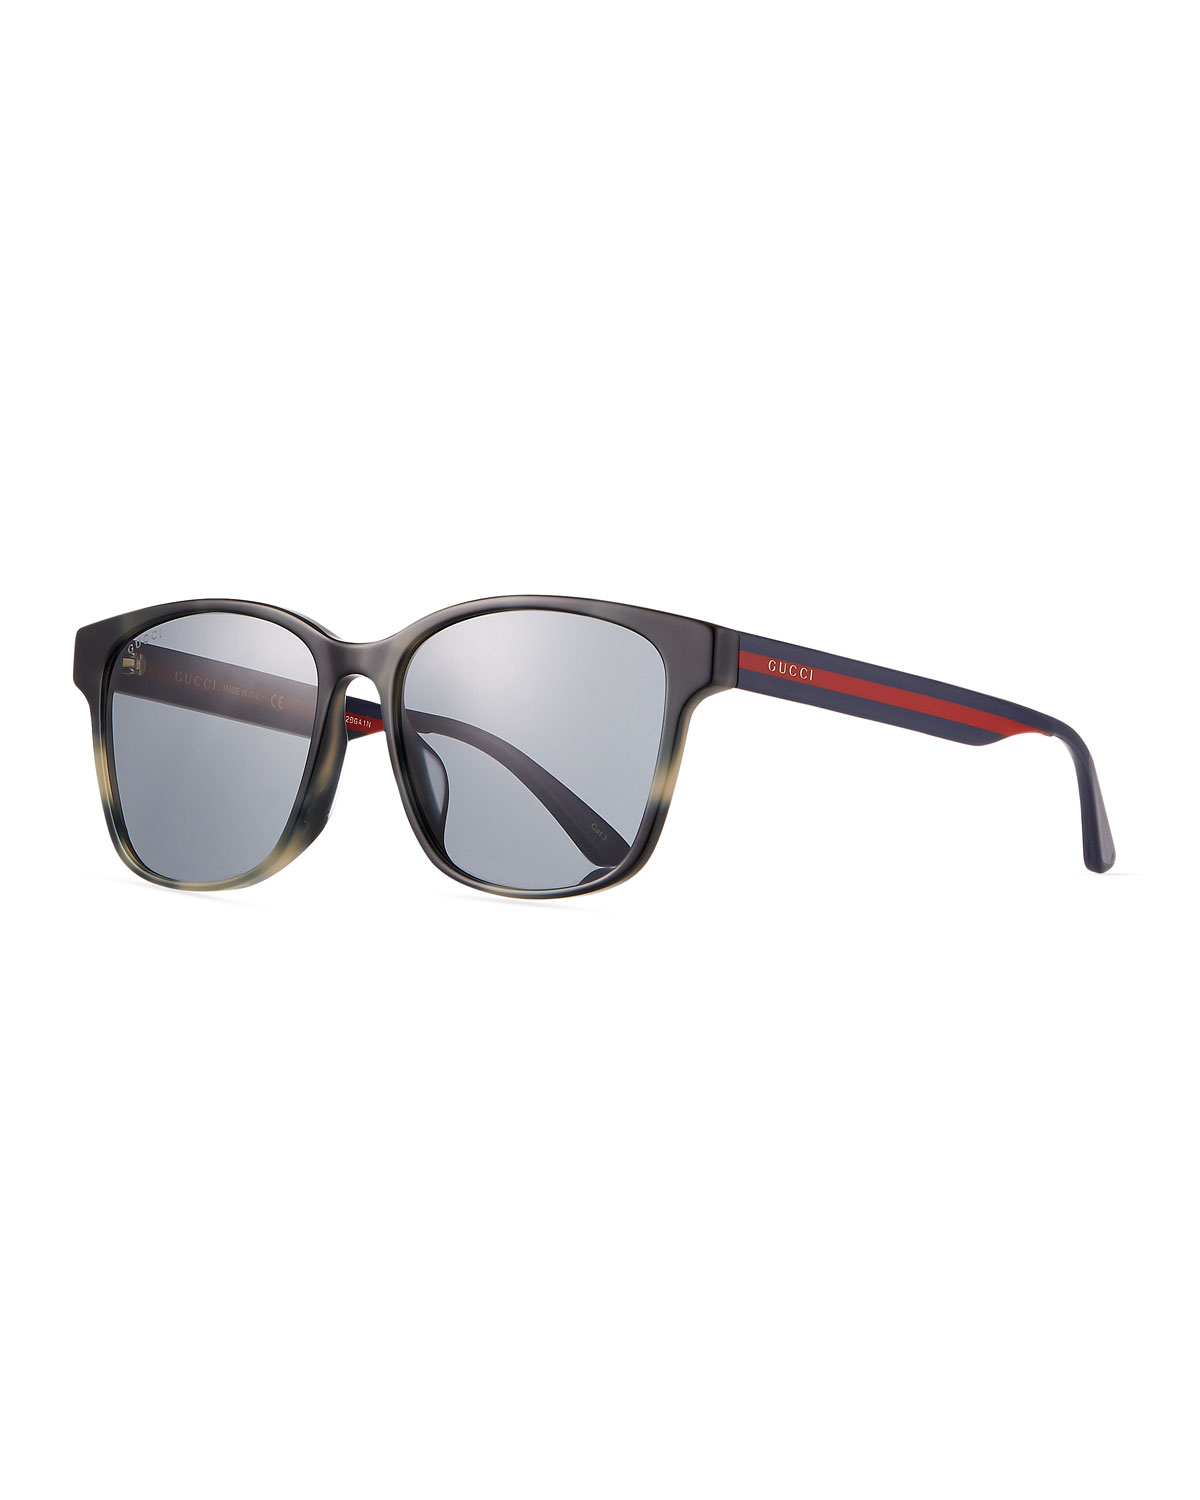 8741e71450a Gucci Men s Square Acetate Sunglasses